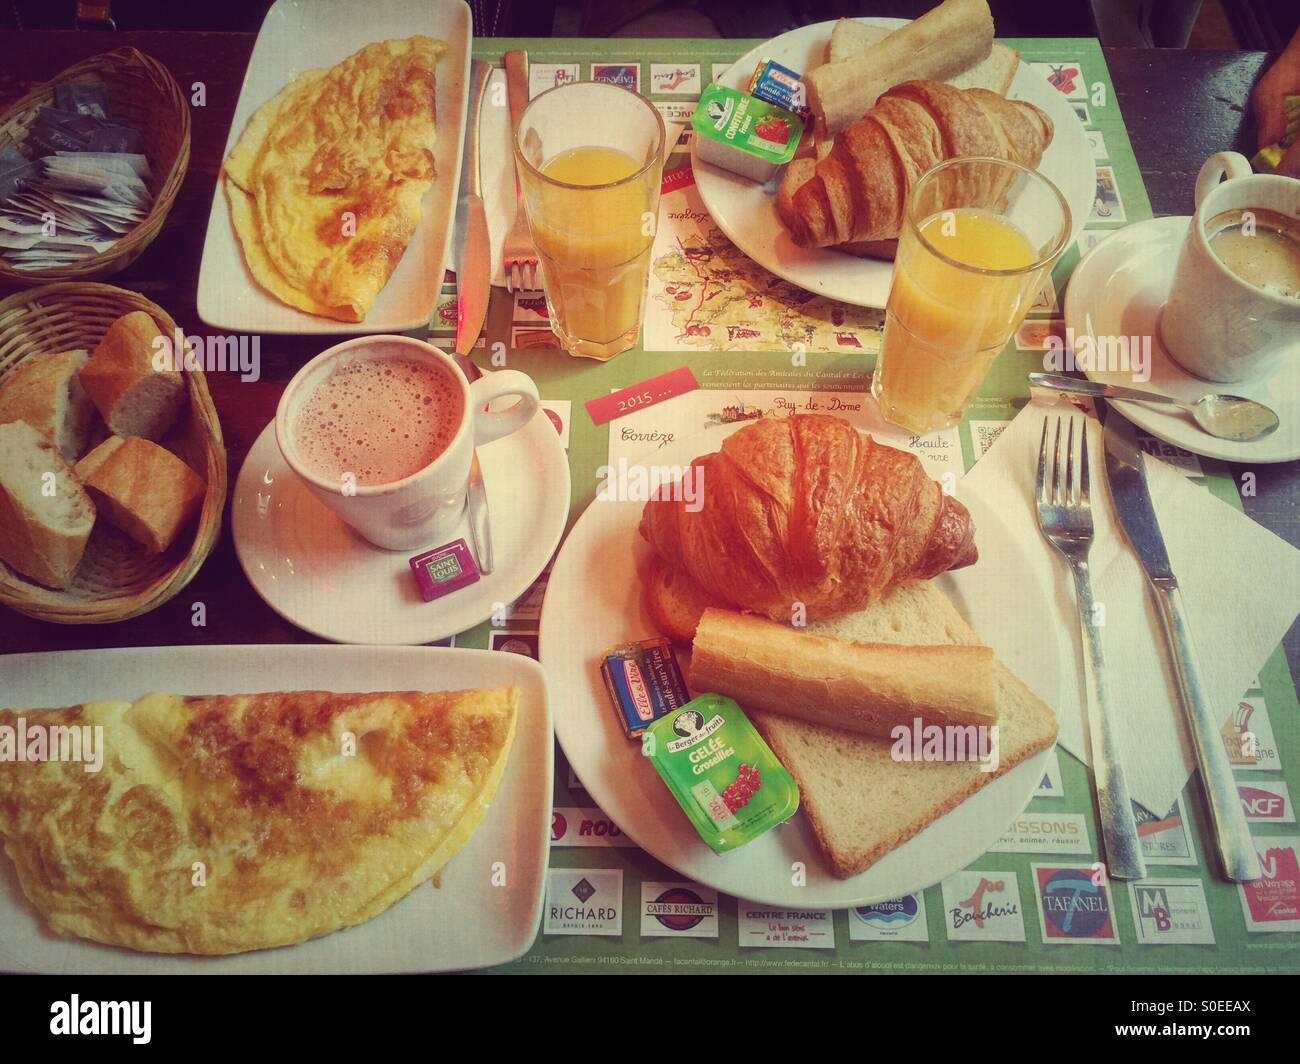 Typical French cafe breakfast at Le Musset brasserie in Paris, France. Croissant, coffee, hot chocolate, orangeStock Photo